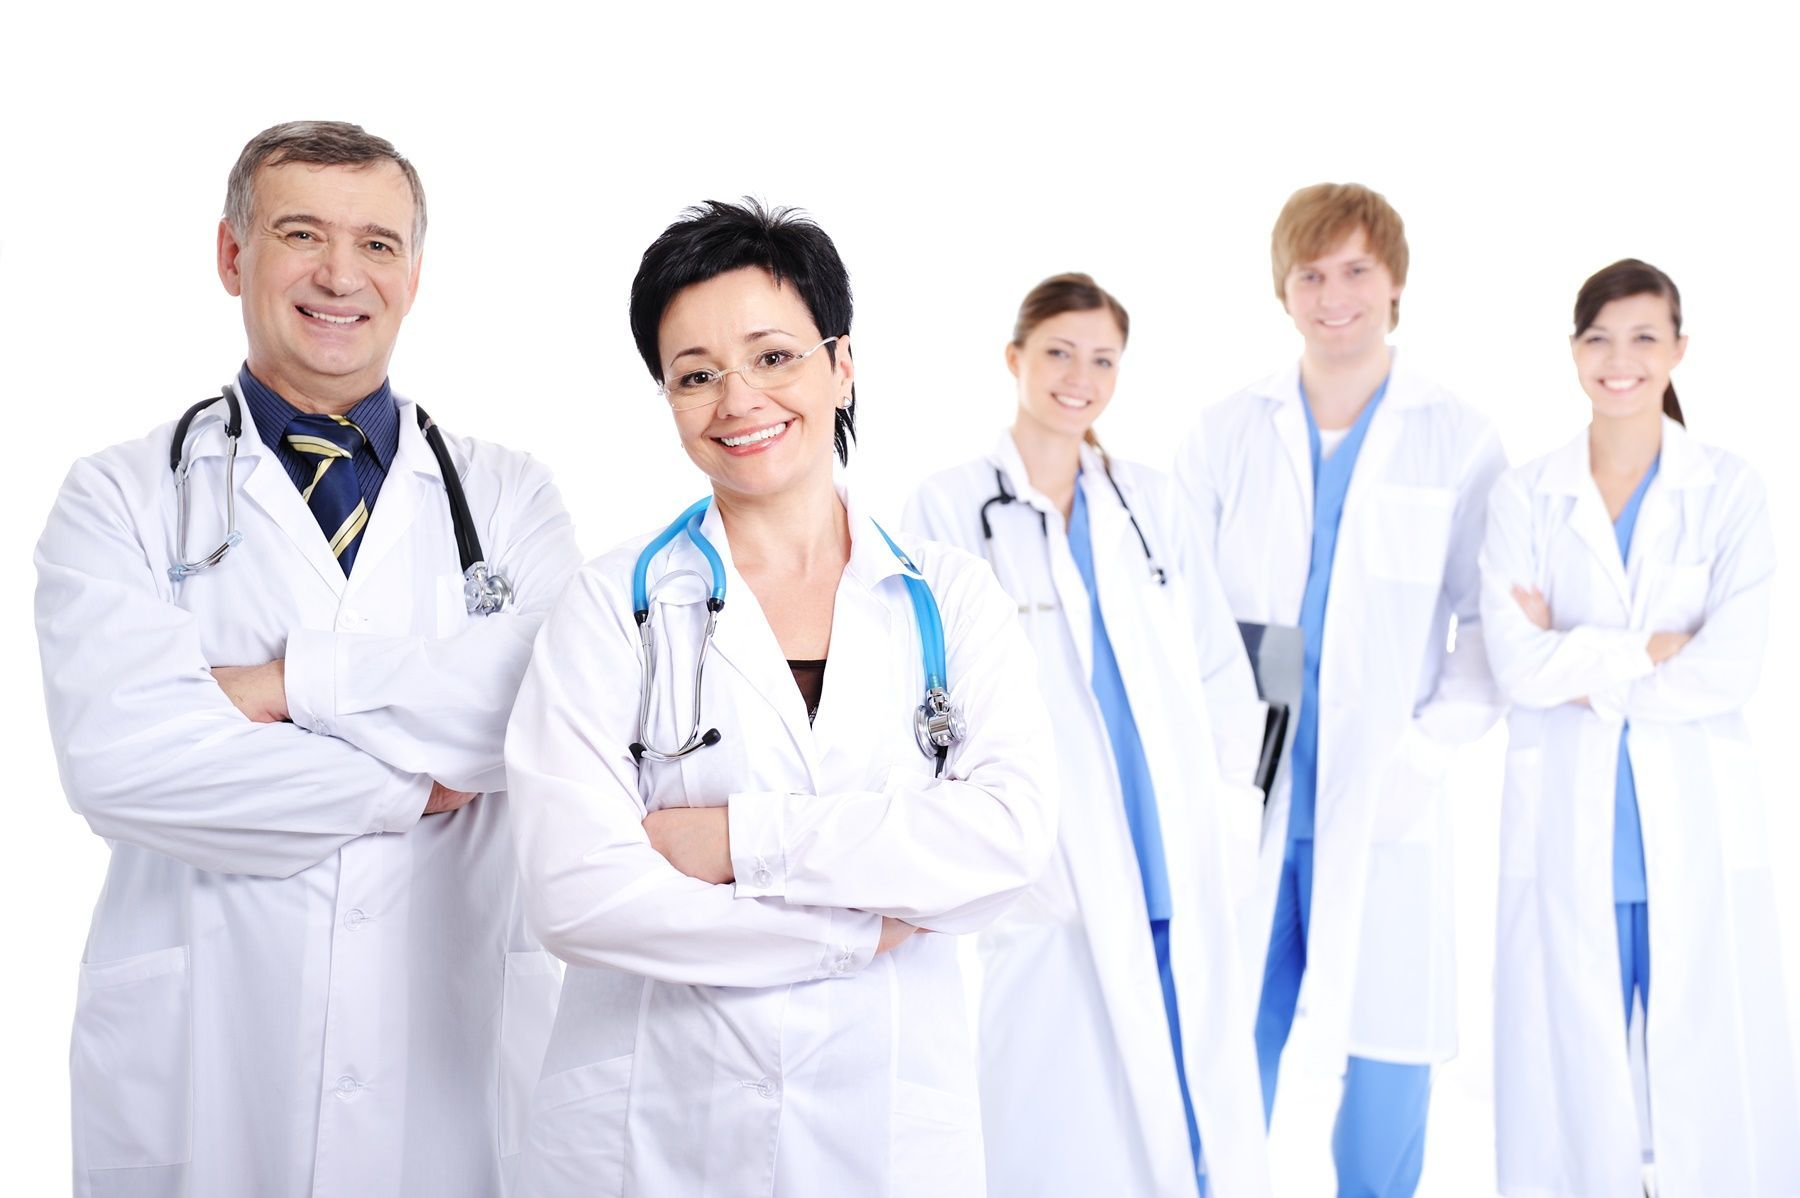 Is there a difference in salary between men and women in medicine?